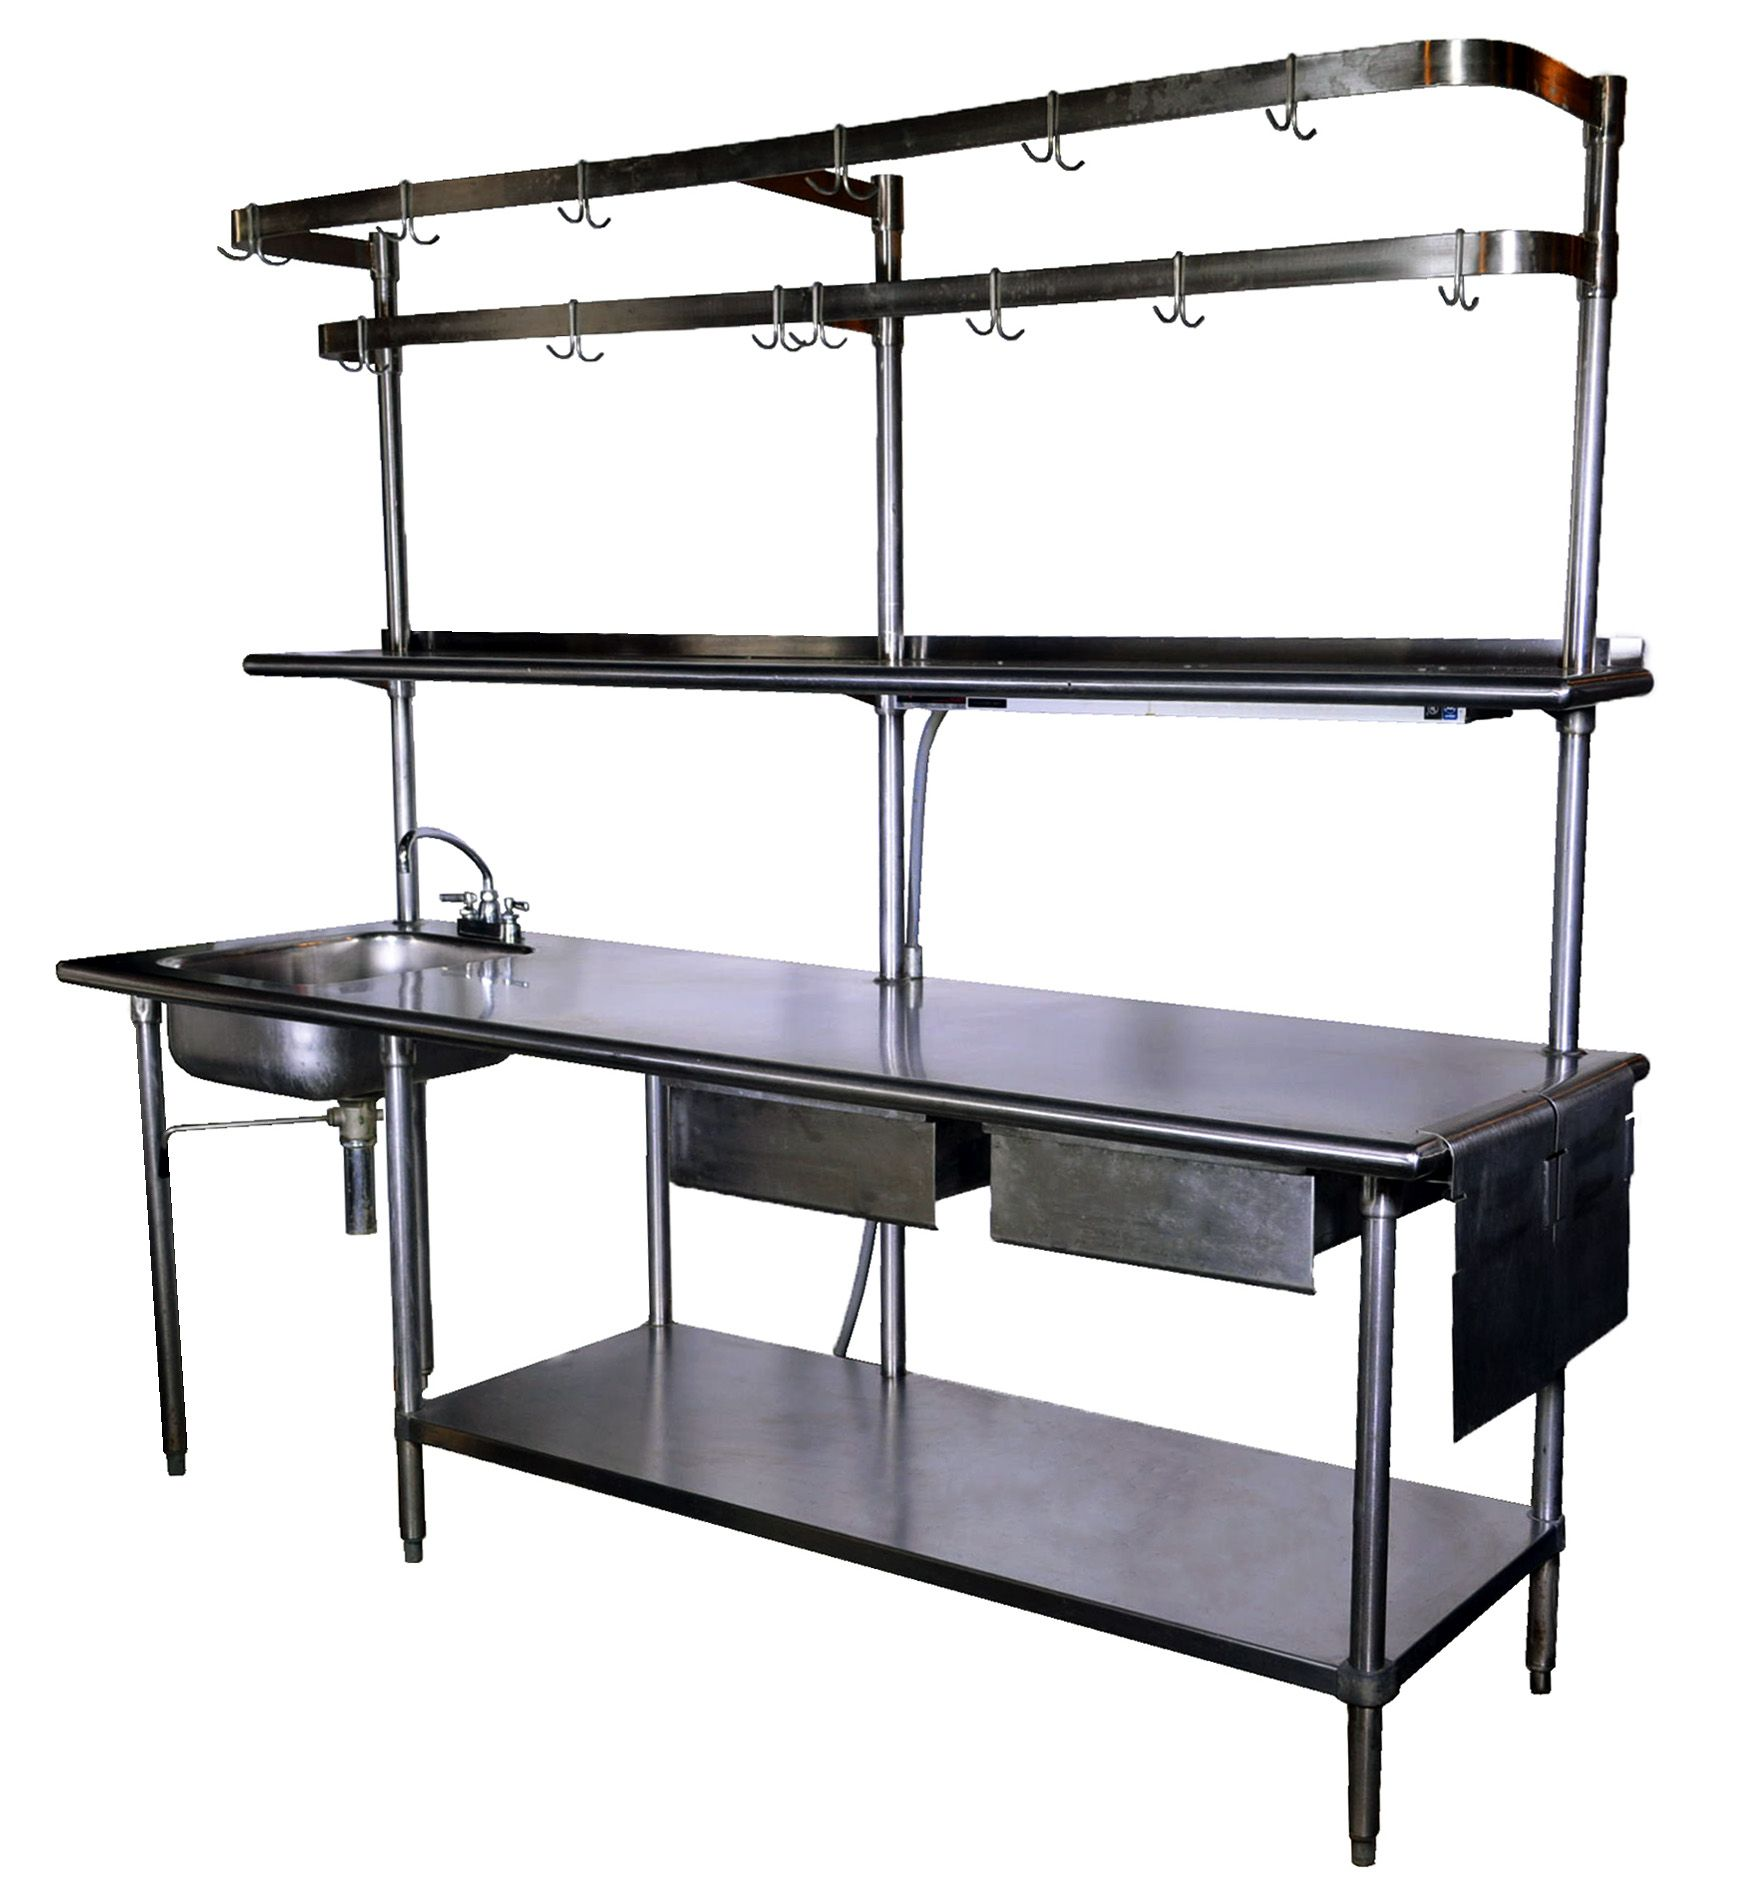 Really Cool Stainless Steel Prep Unit With Sink And Pot Hangers Industrial Kitchen Design White Modern Kitchen Industrial Kitchen